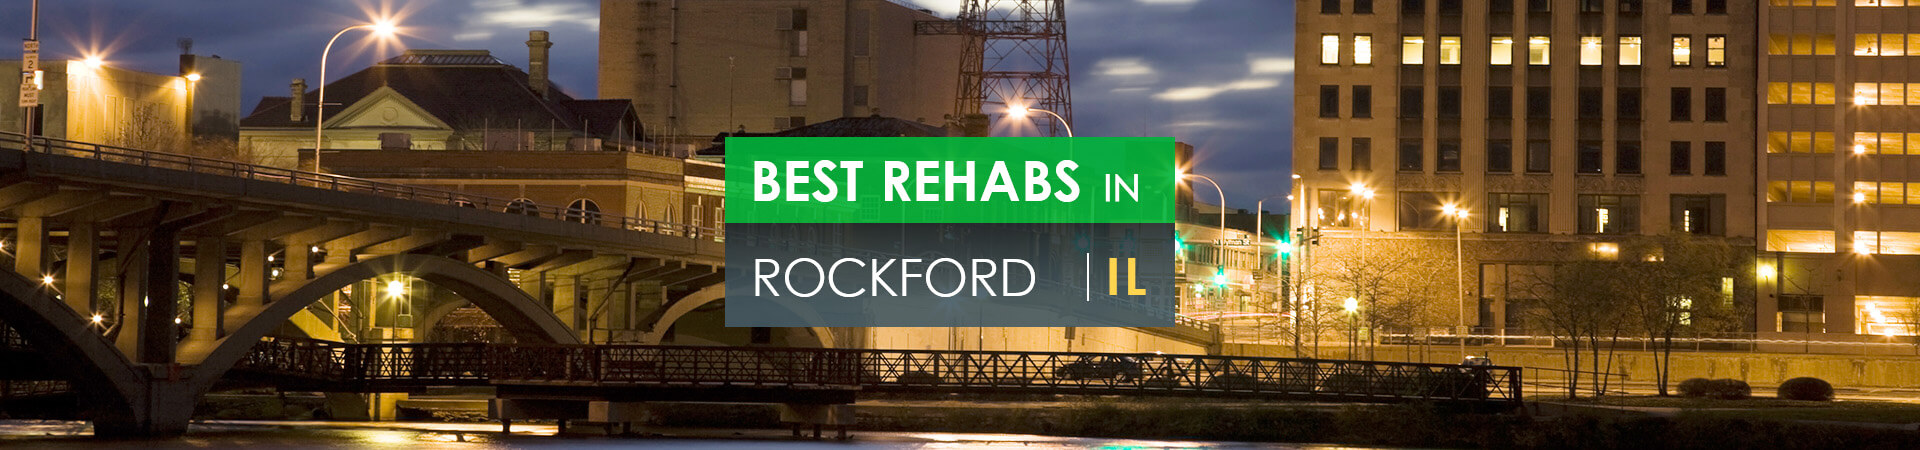 Best rehabs in Rockford, IL